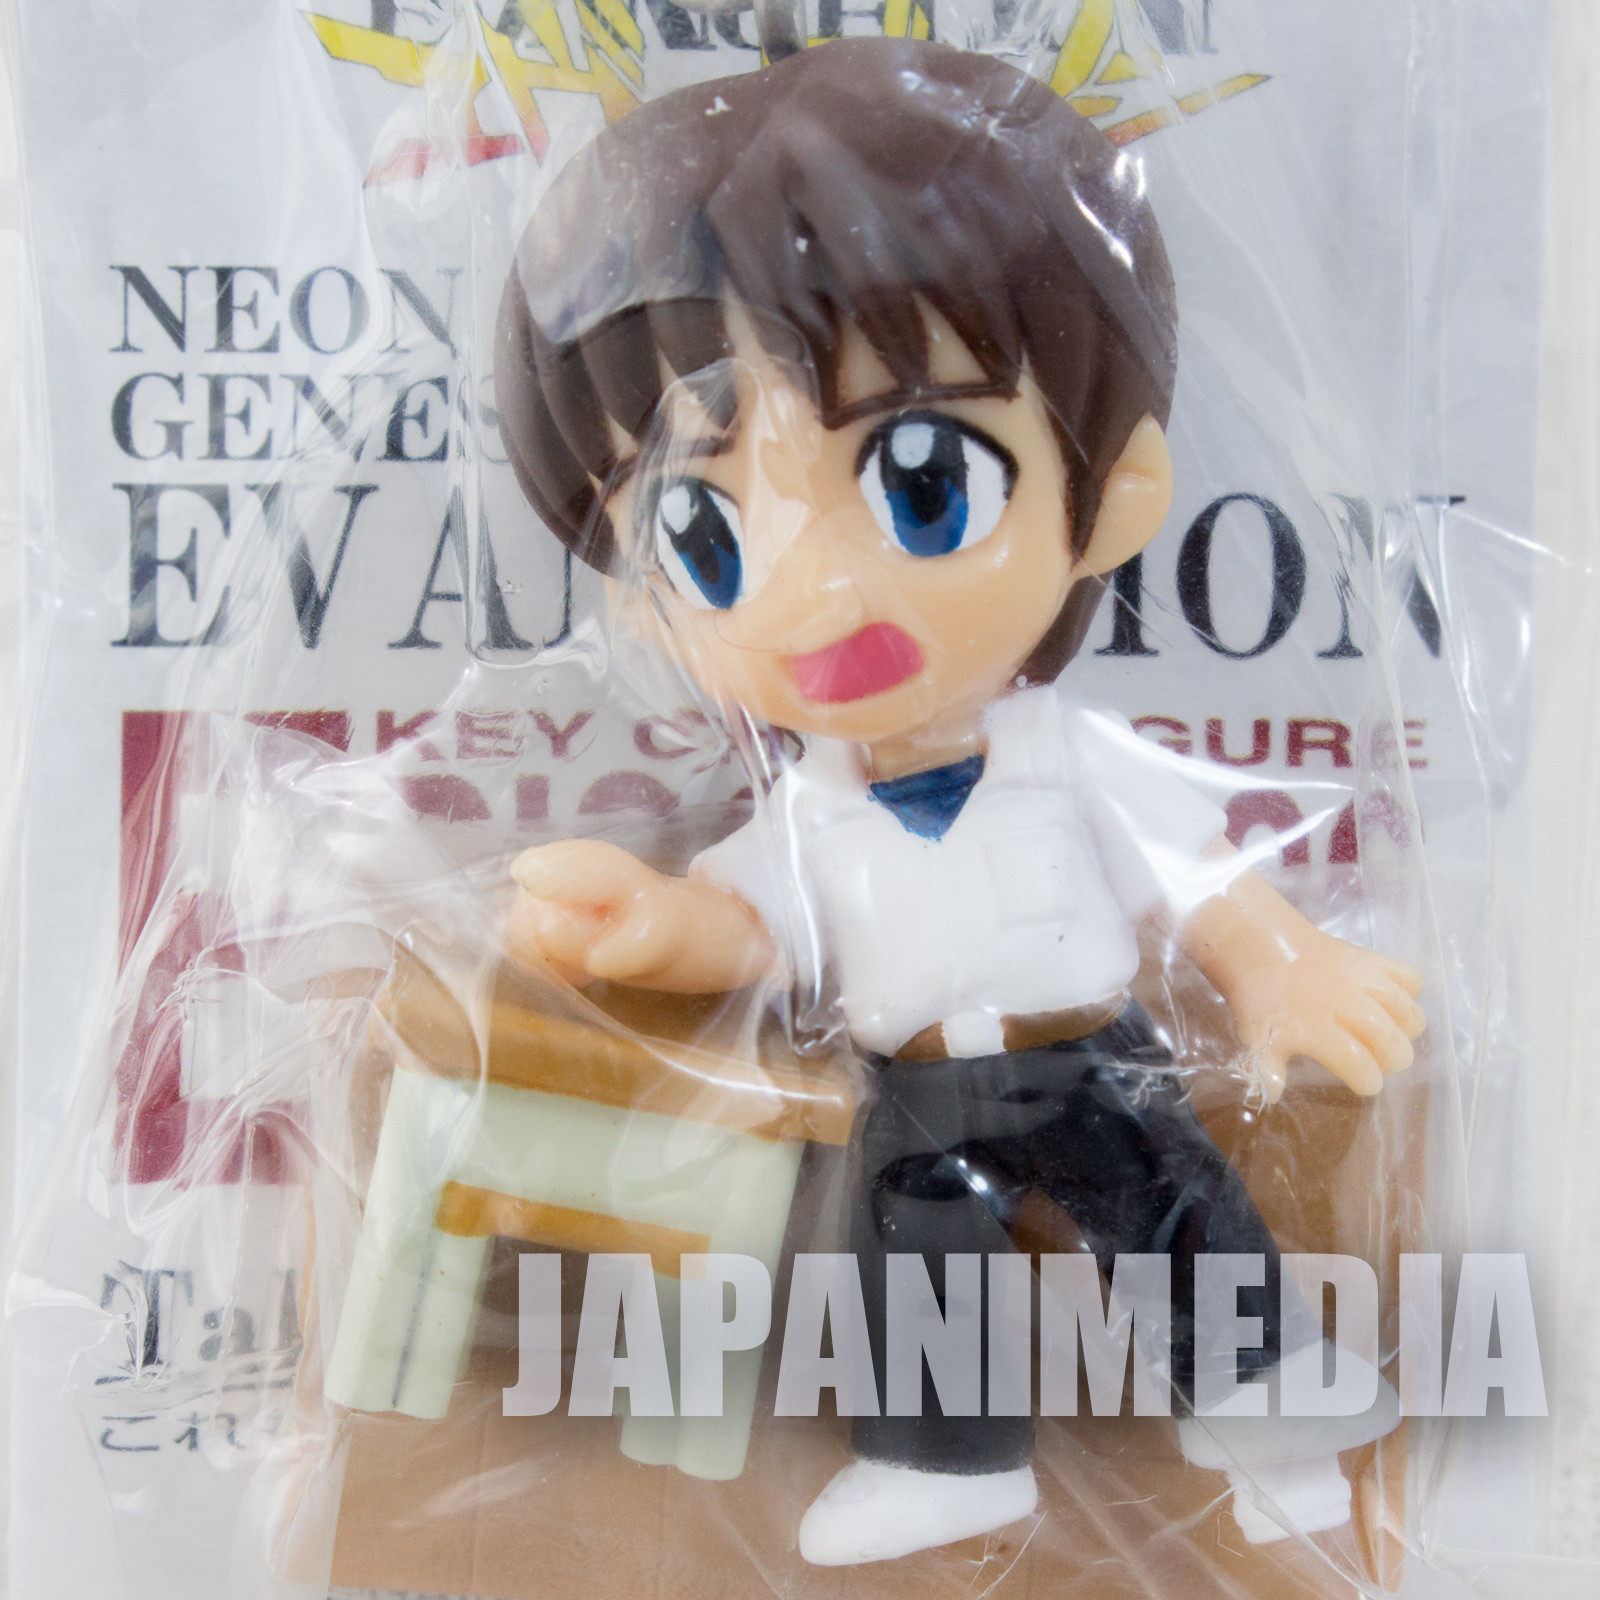 Evangelion Shinji Ikari School Uniform Mascot Figure BallChain JAPAN ANIME MANGA